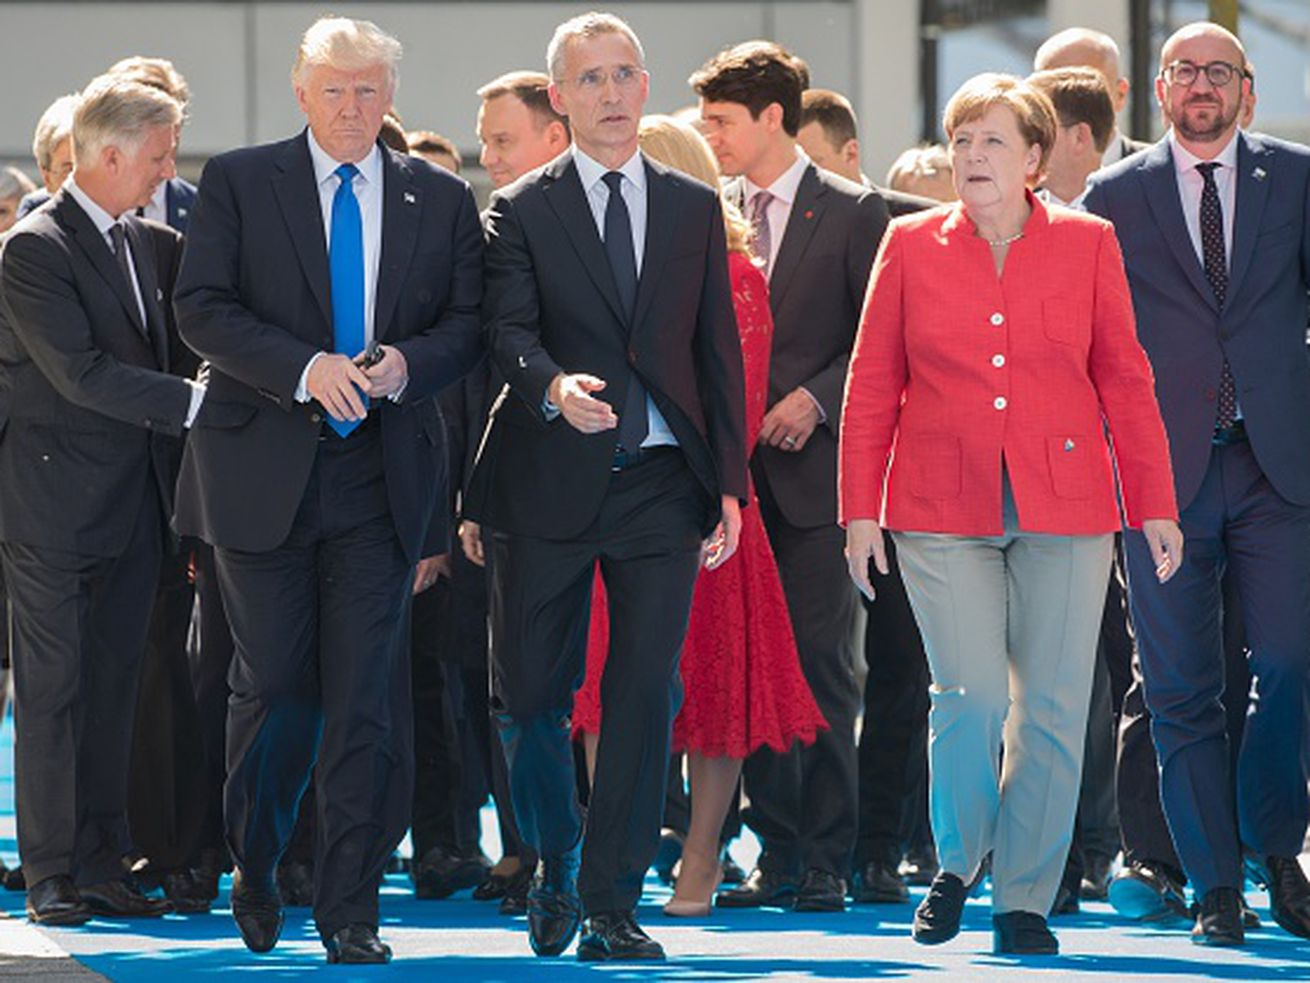 President Donald Trump, NATO Secretary General Jens Stoltenberg, Chancellor of Germany Angela Merkel, and Belgian Prime Minister Charles Michel arrive in May 2017 for the unveiling of NATO's new headquarters in Brussels.